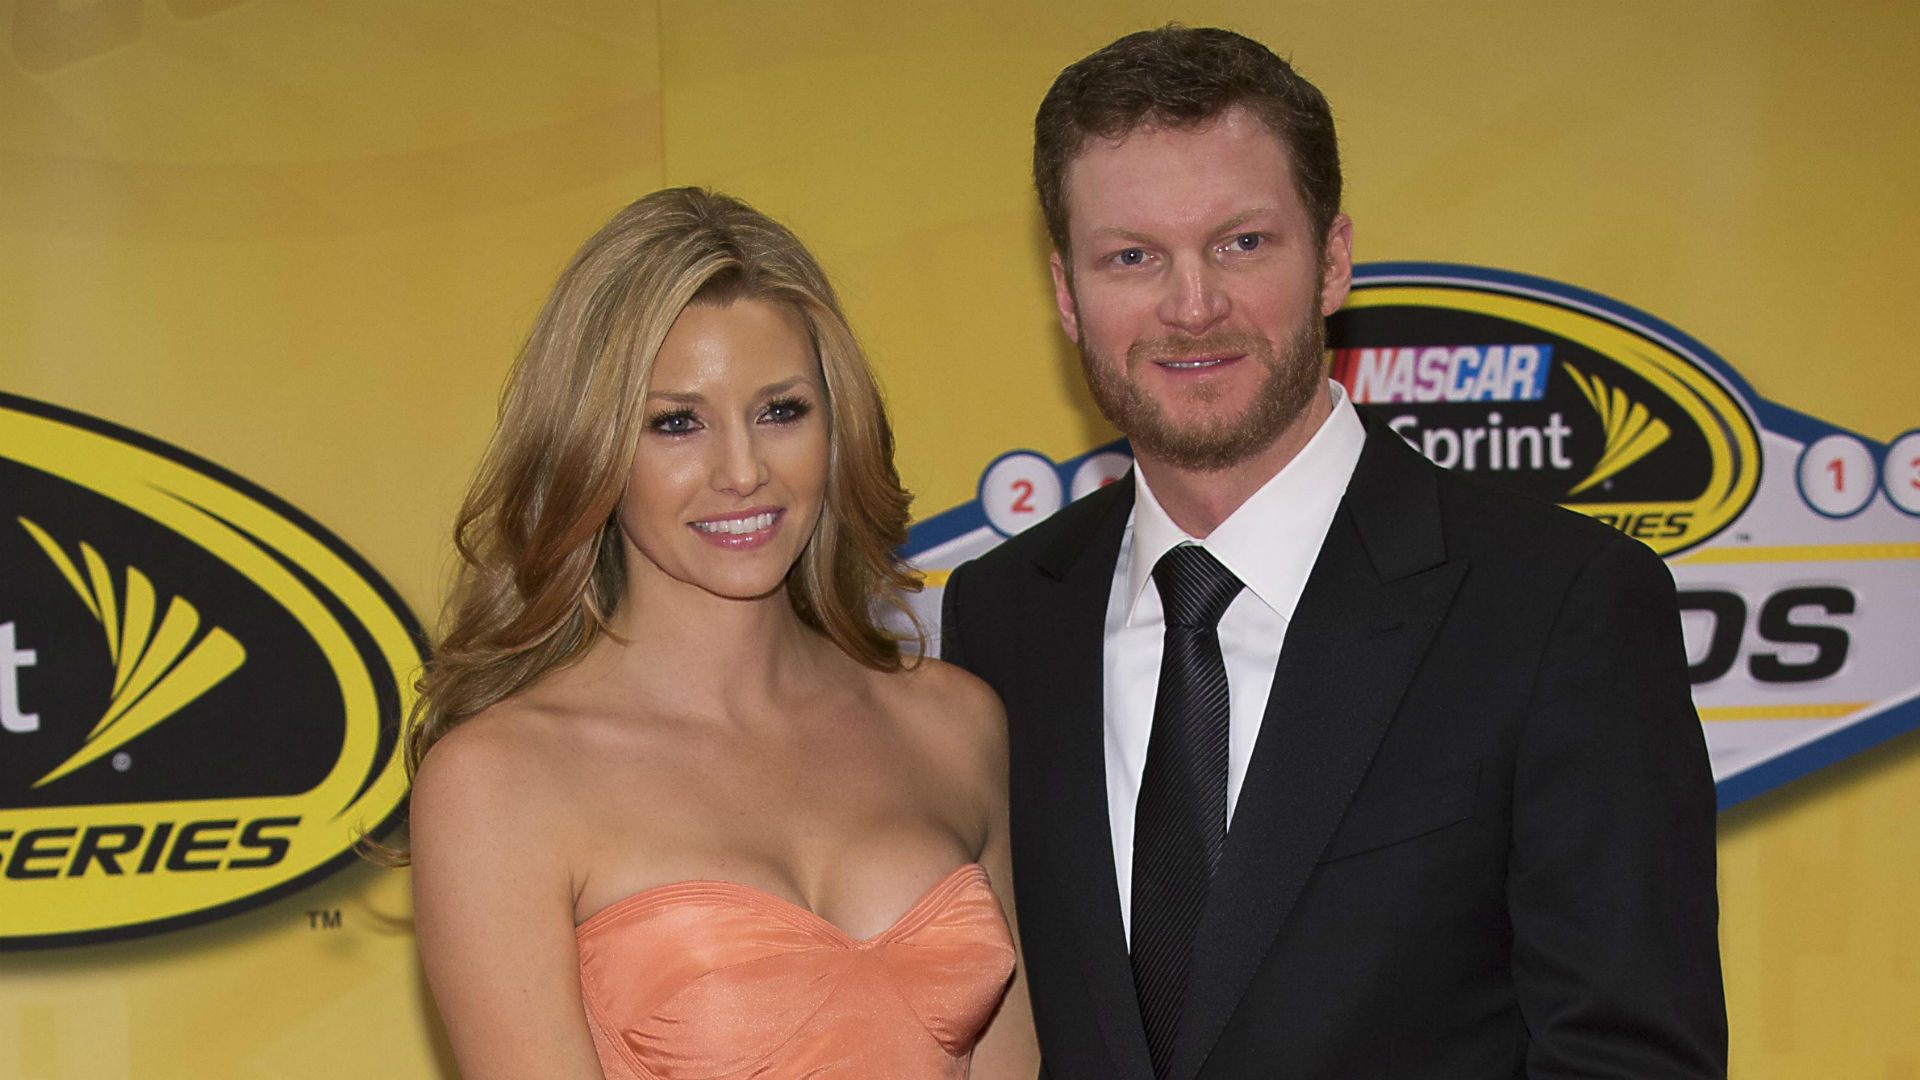 Is dale earnhardt jr dating anyone